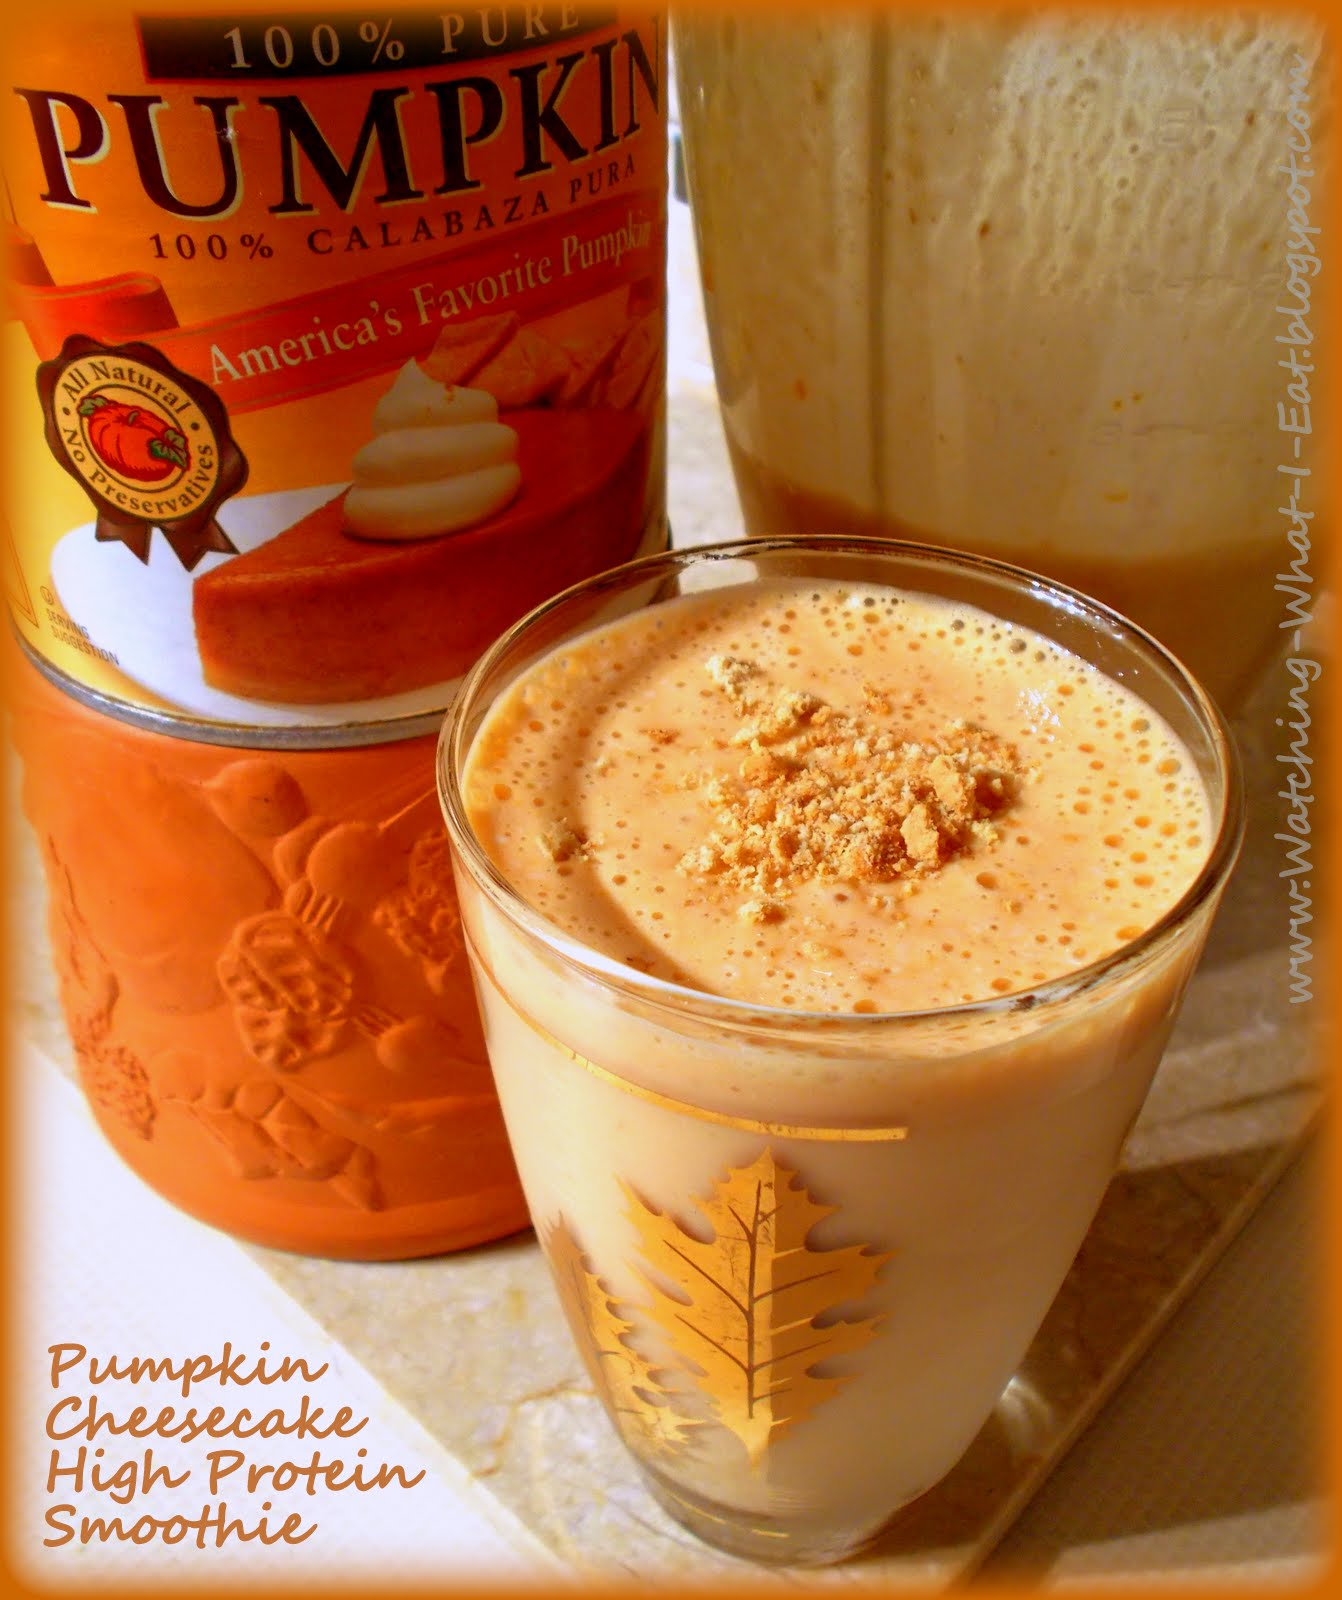 Pumpkin Cheesecake High Protein Smoothie ~ Another way to eat pumpkin ...